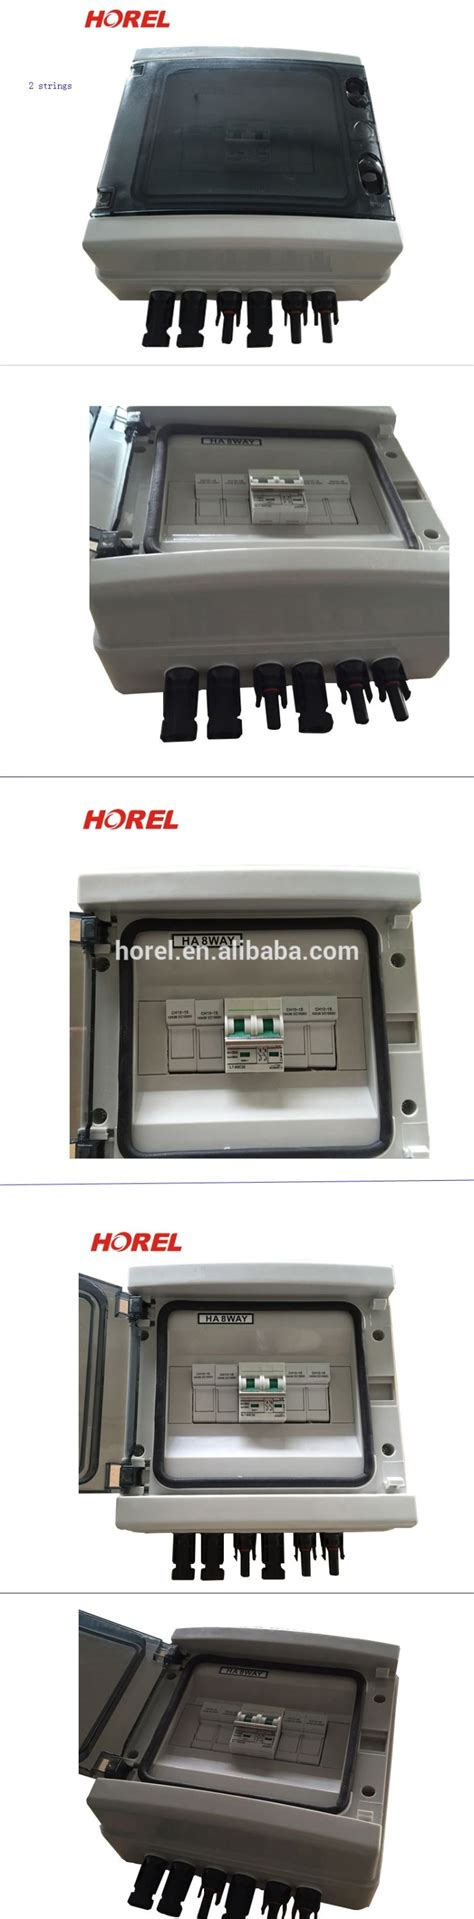 Junction Box 48ch Input 1 Output 3 Handmade For Foh Broadcastmonitor hrpv 2 1 2input 1 output dc combiner box buy dc combiner box product on alibaba